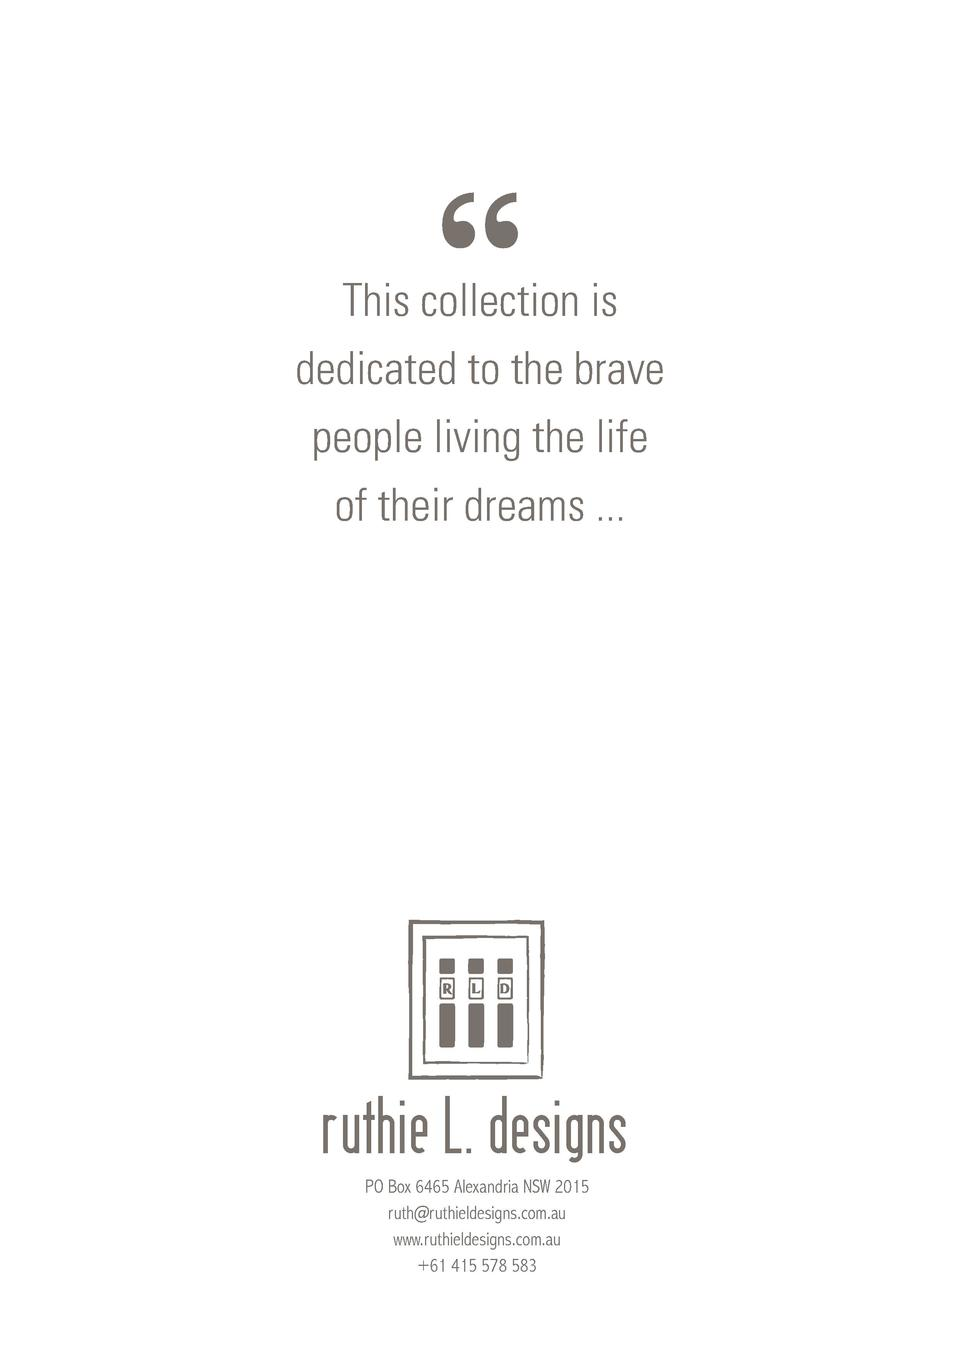 This collection is dedicated to the brave people living the life of their dreams ...  ruthie L. designs PO Box 6465 A...